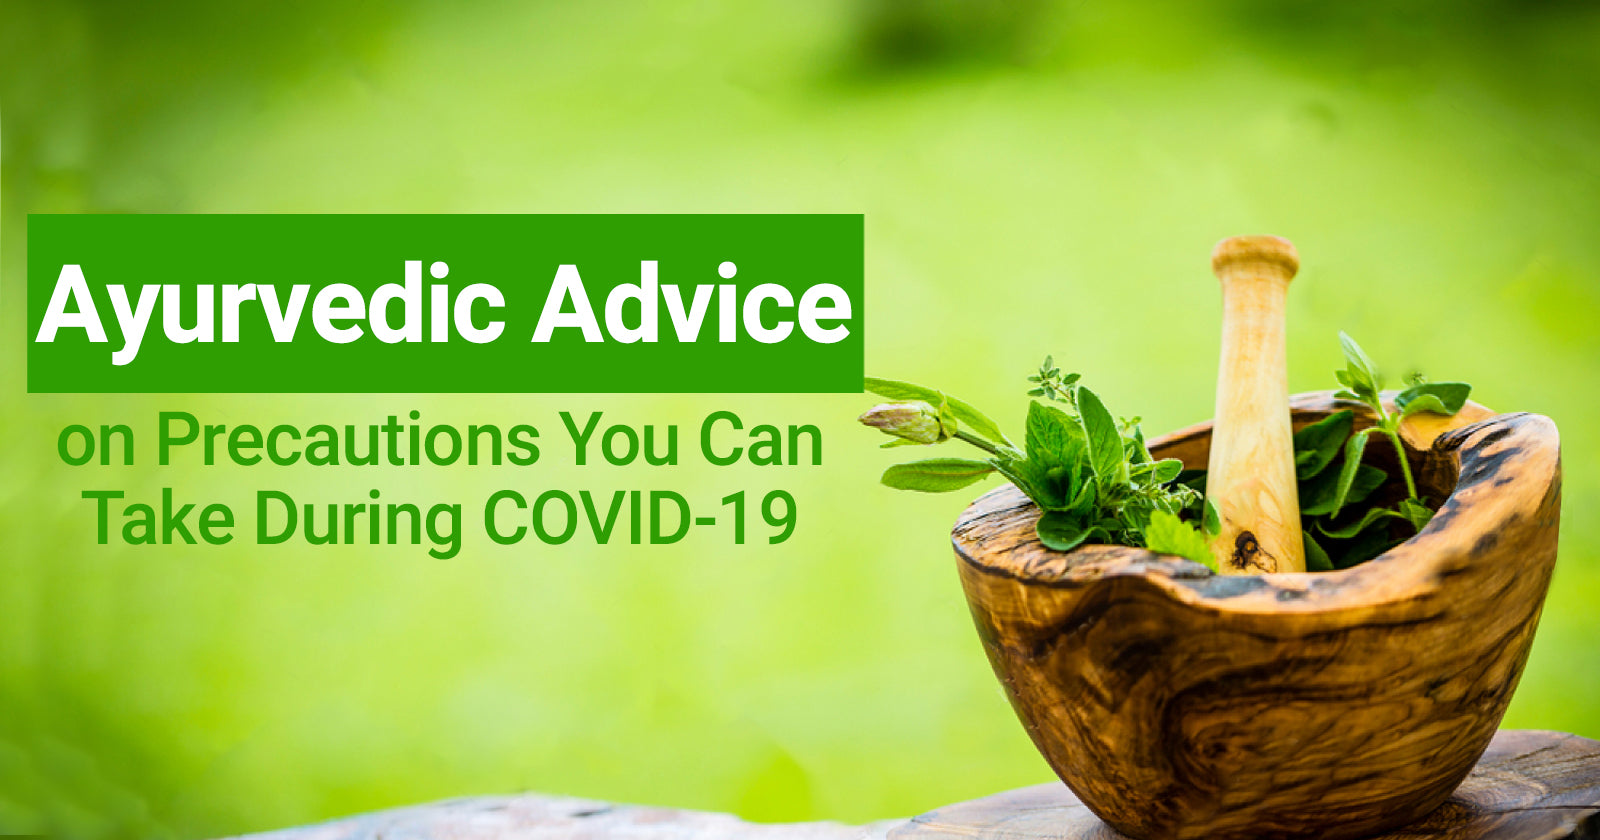 Ayurvedic Advice on Precautions you can take during COVID-19